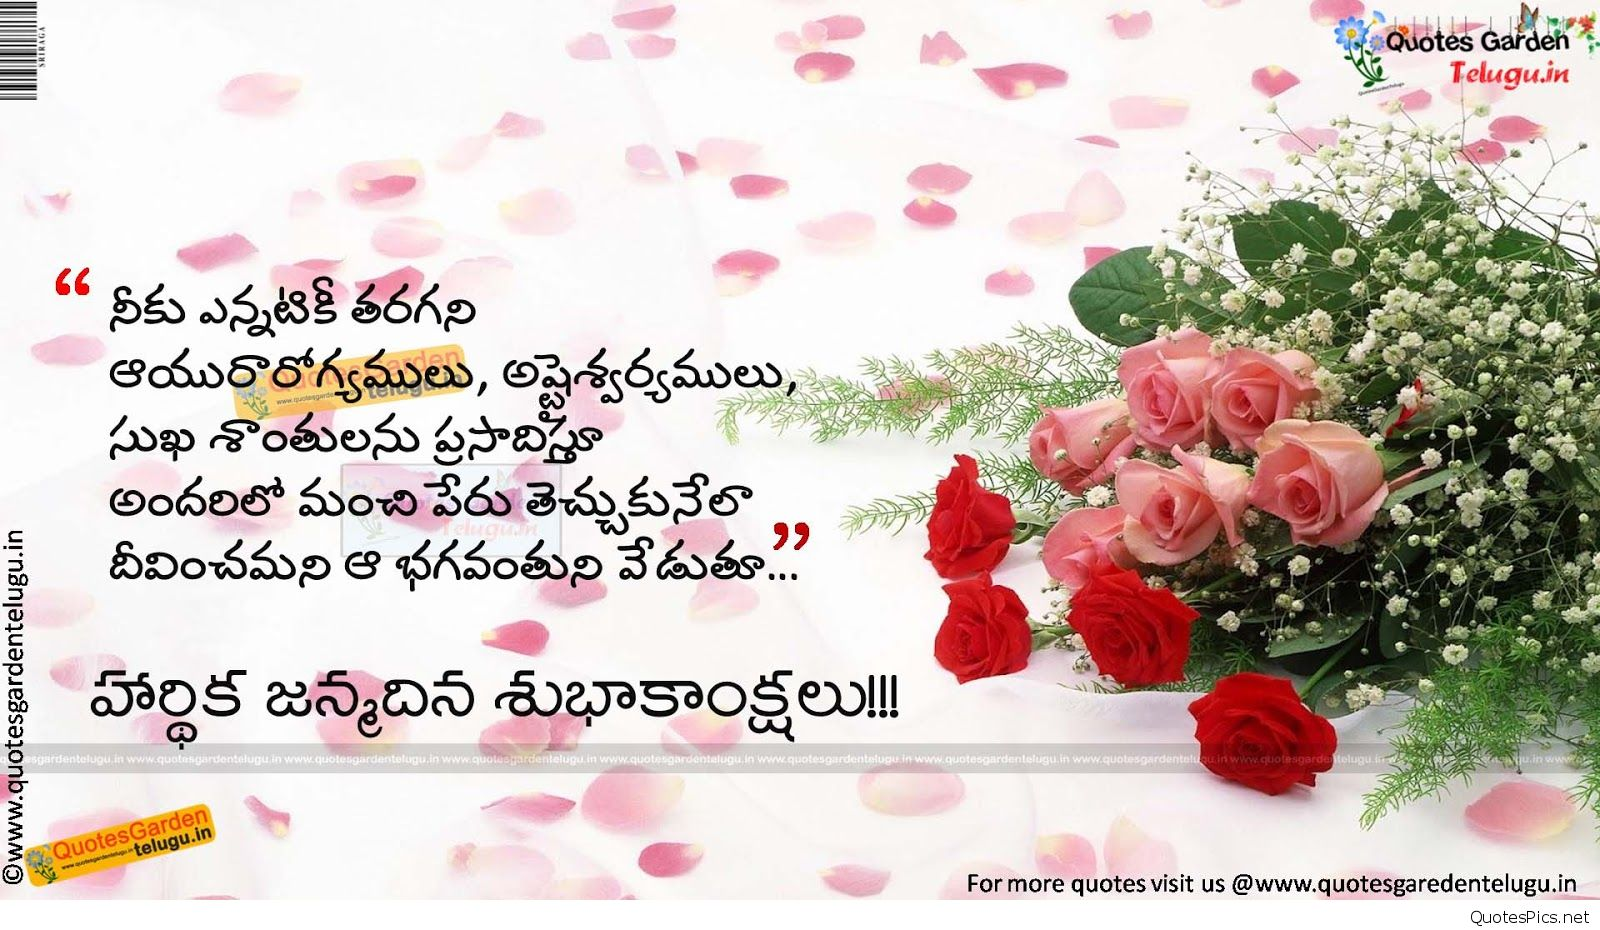 brother birthday wishes greeting cards ; Nice-Birthday-Wishes-Greetings-wallpapers-quotes-in-telugu